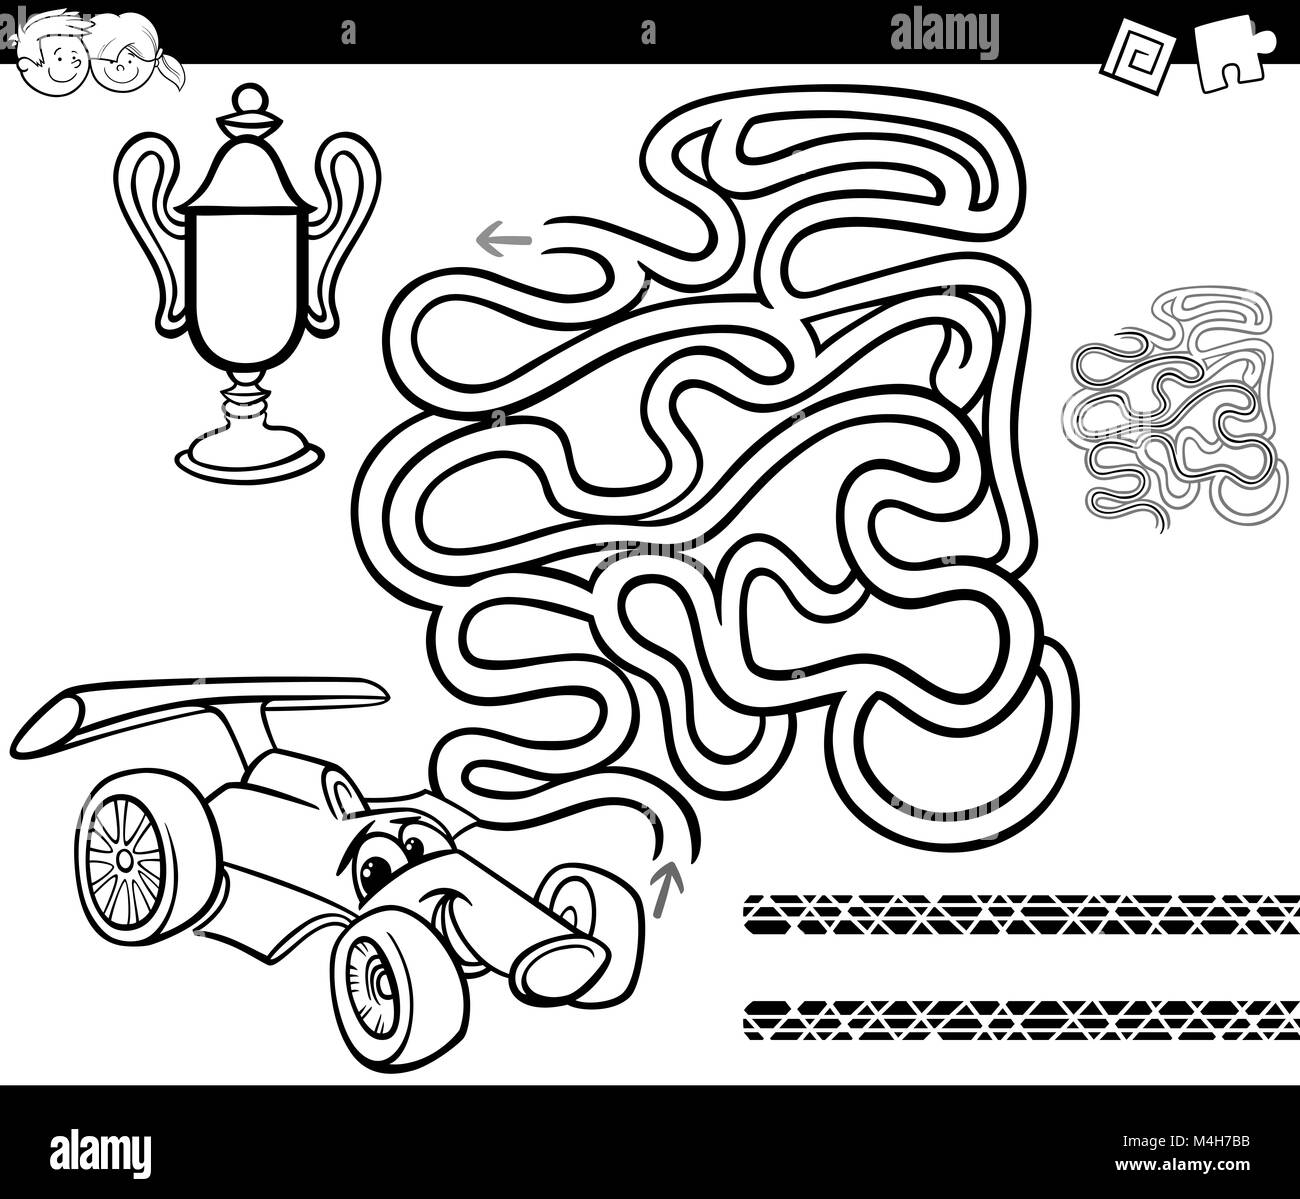 Maze With Race Car Coloring Page Stock Photo 174941295 Alamy